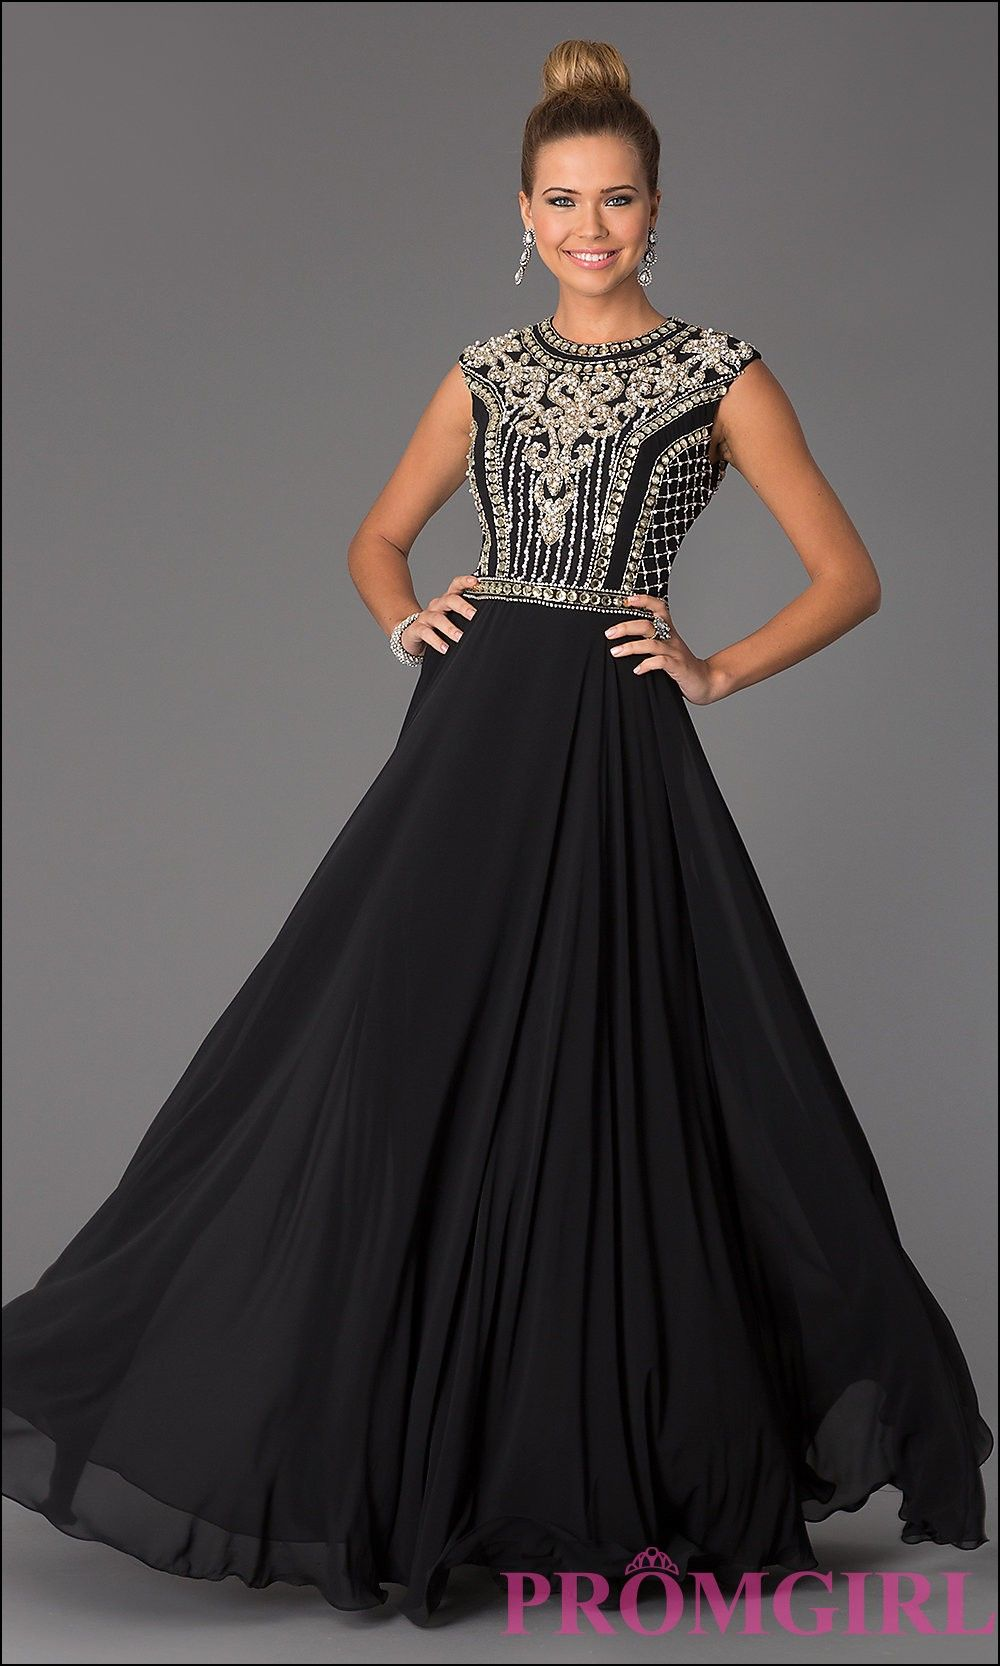 jcpenney prom gowns | black & white | pinterest | jcpenney prom